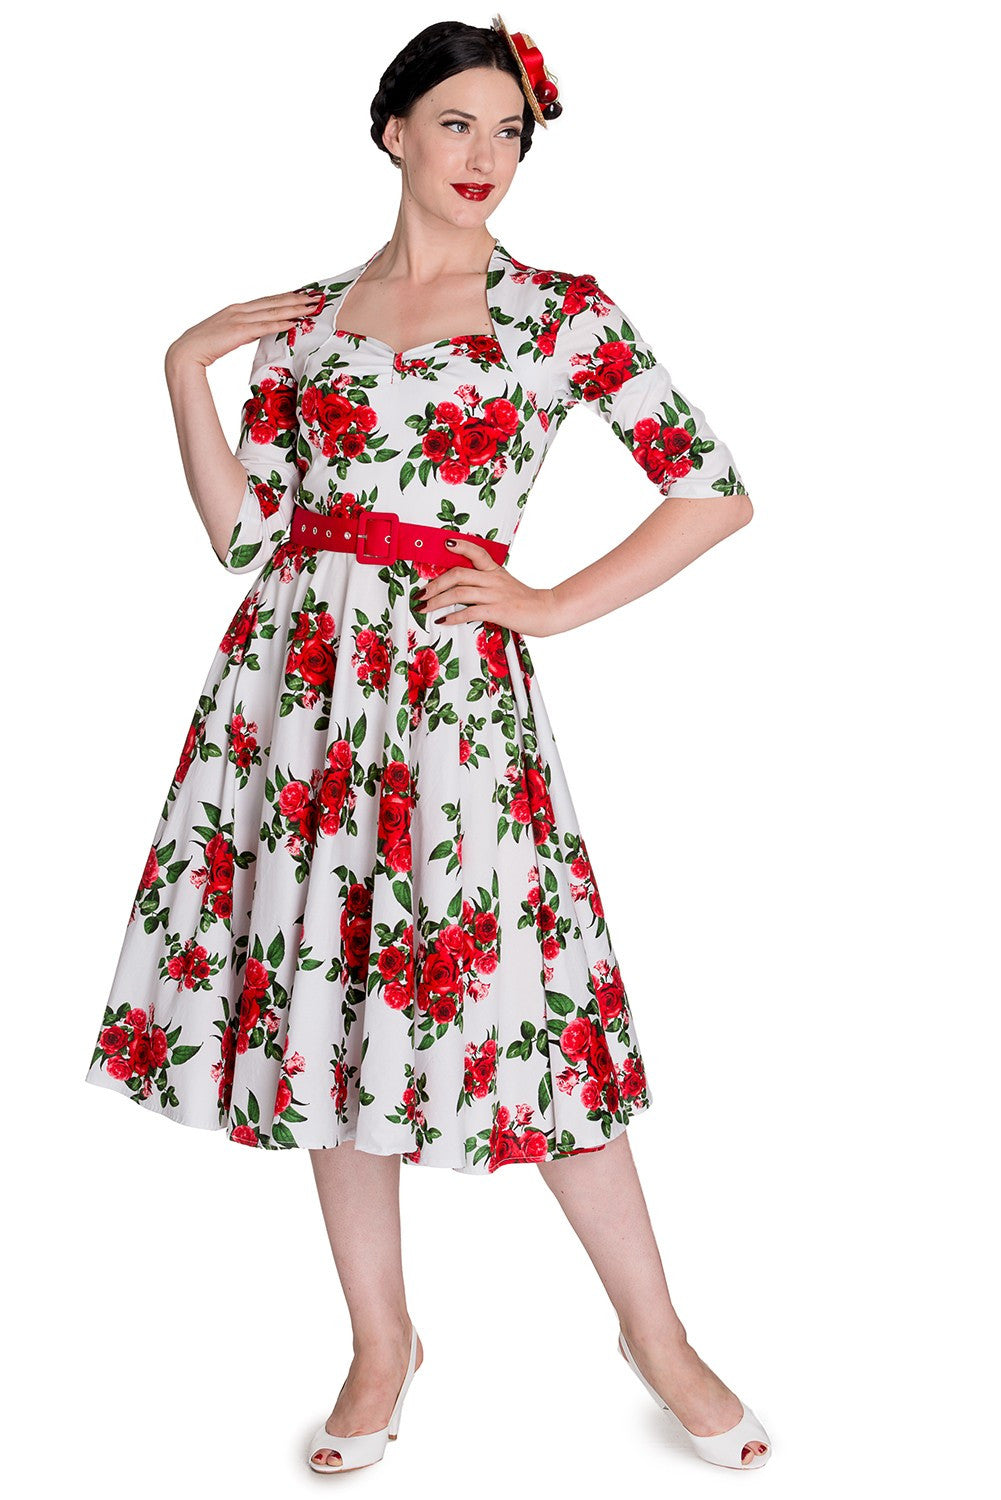 Eternity 50s Dress in White